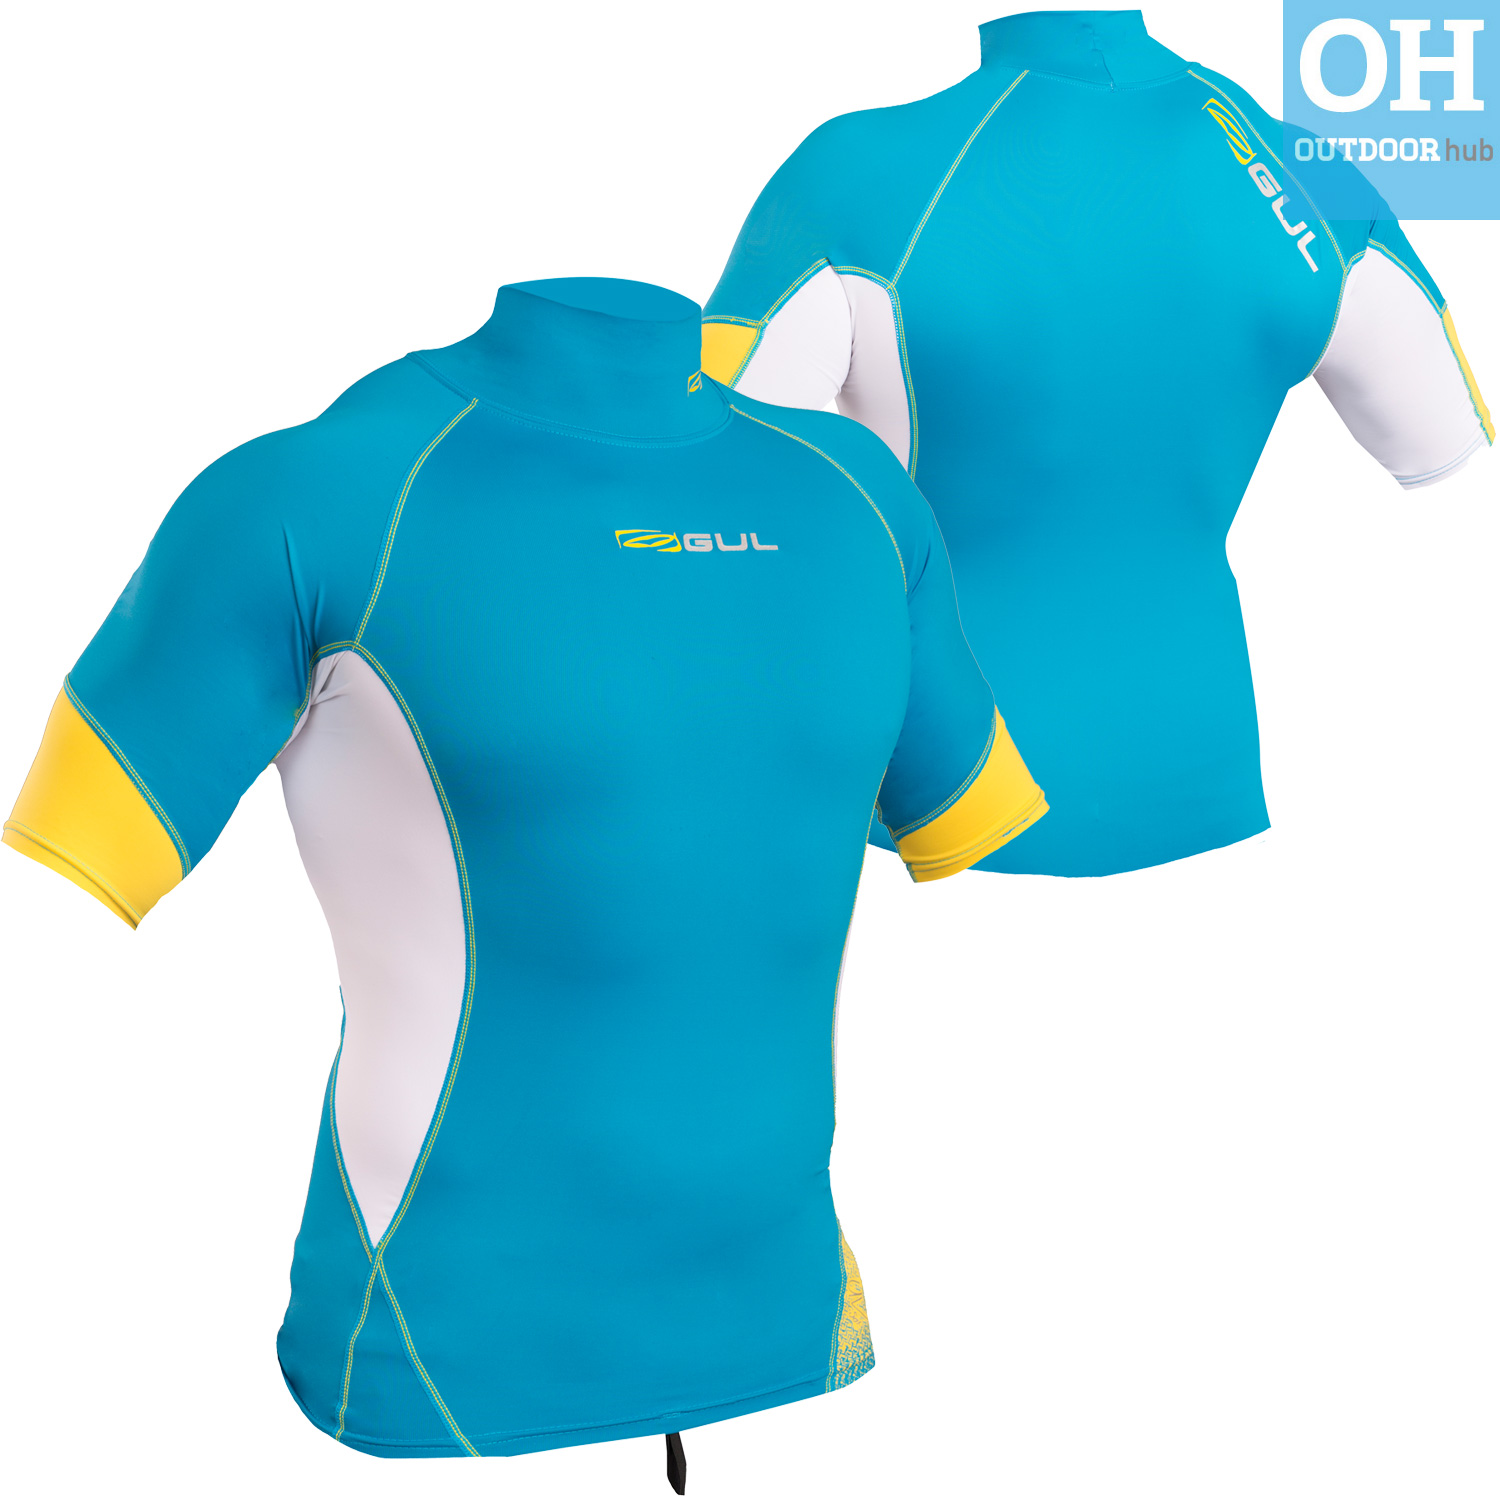 Gul-Xola-Mens-Short-Sleeve-Rash-Guard-Vest-Wetsuit-Top-UV-50-Surf-Swim-Dive thumbnail 19